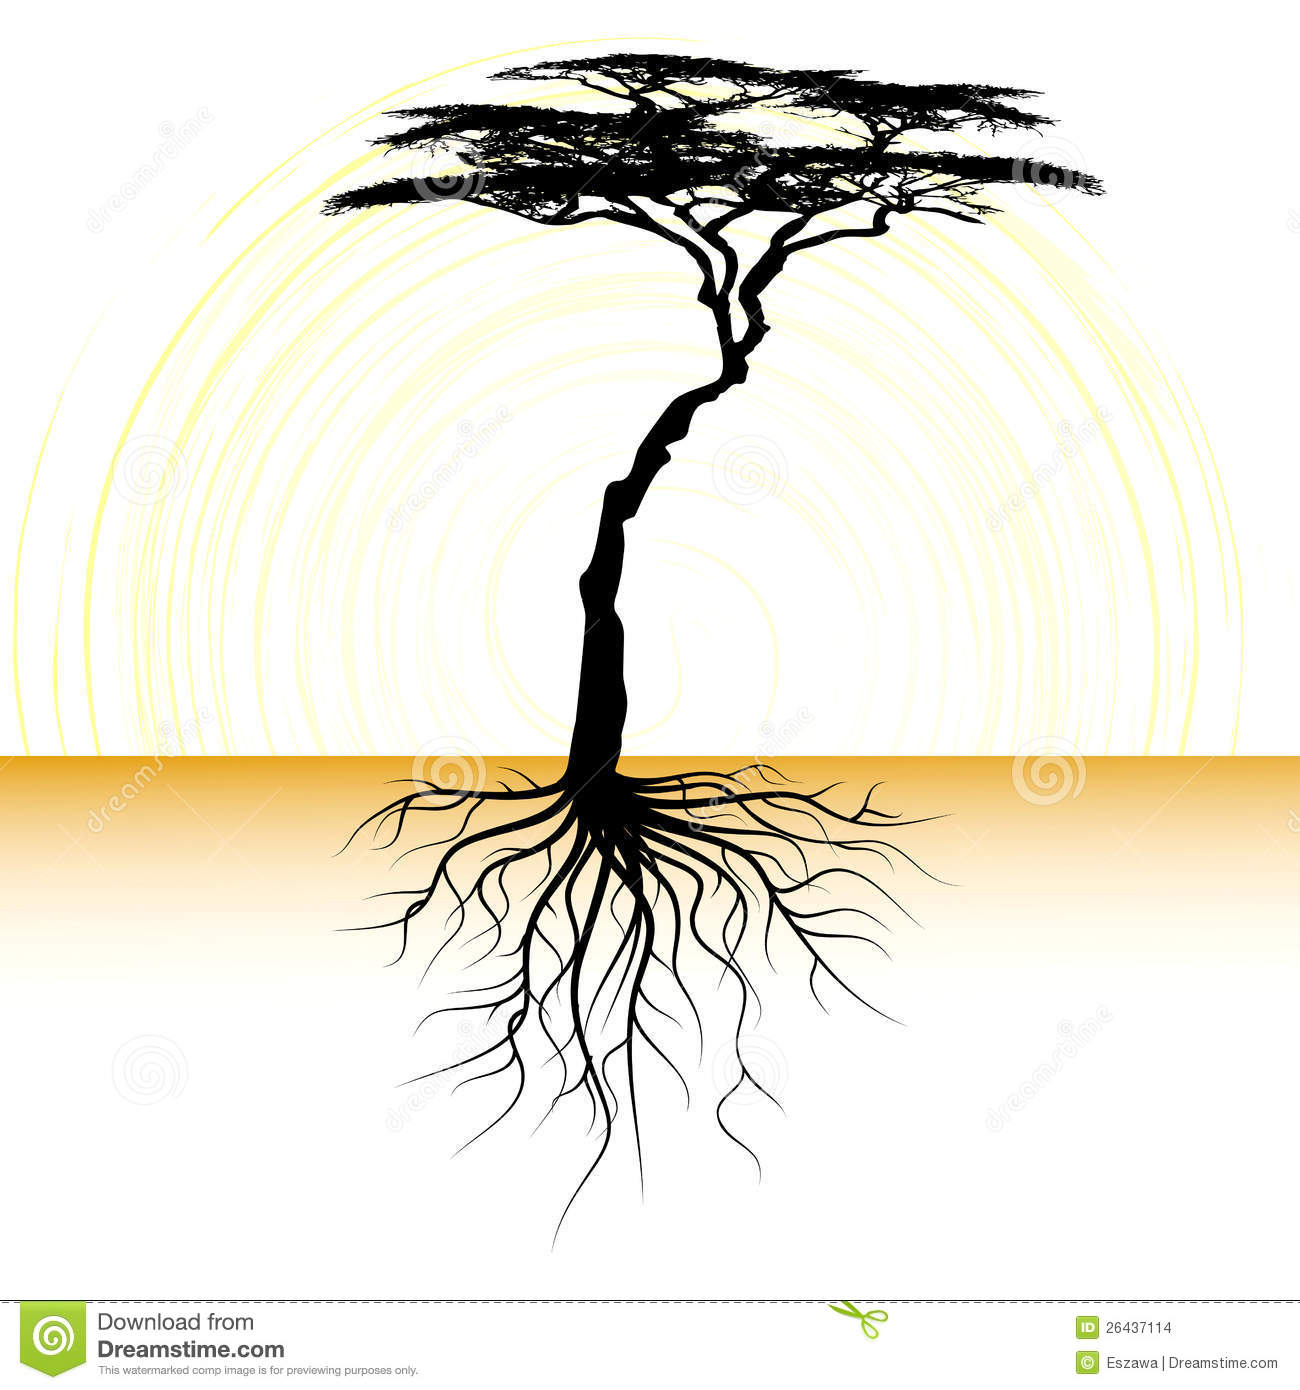 Acacia tree with a root